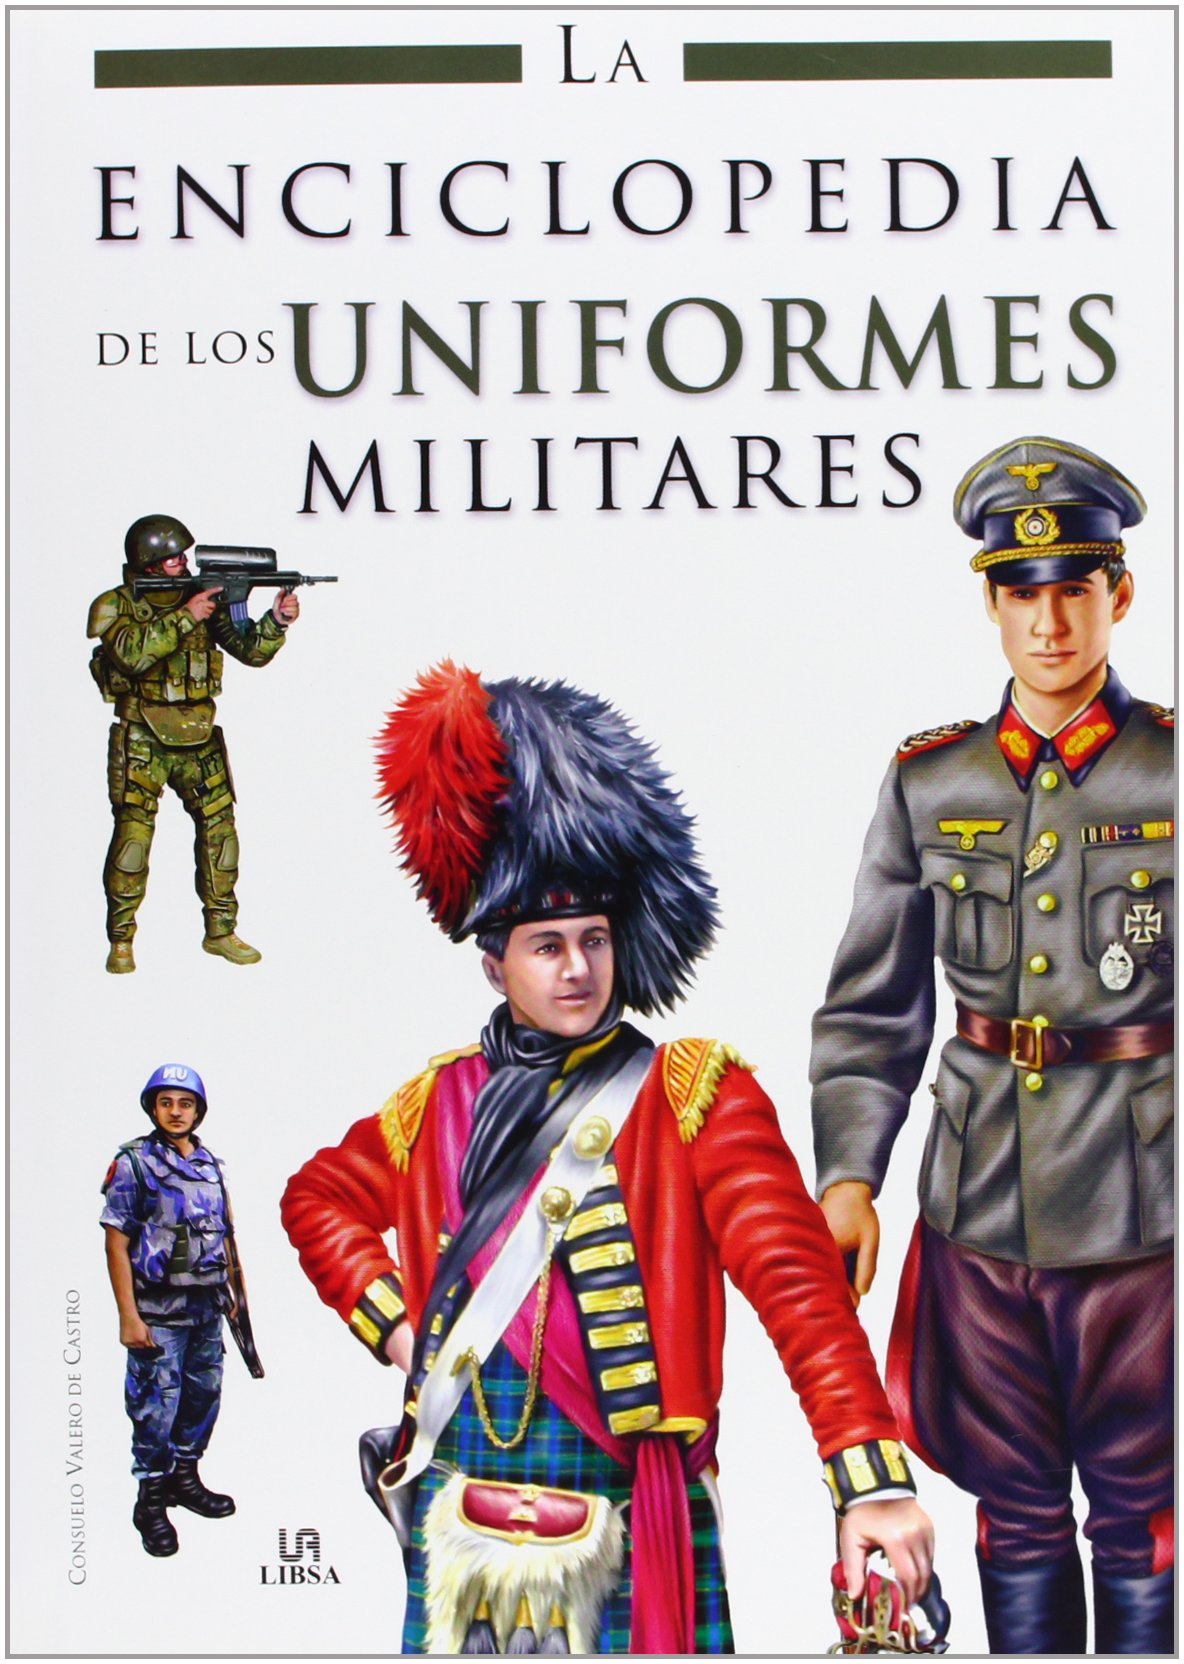 La enciclopedia de los uniformes militares / The Encyclopedia of Military Uniforms (Spanish Edition): Consuelo Valero De Castro: 9788466217316: Amazon.com: ...